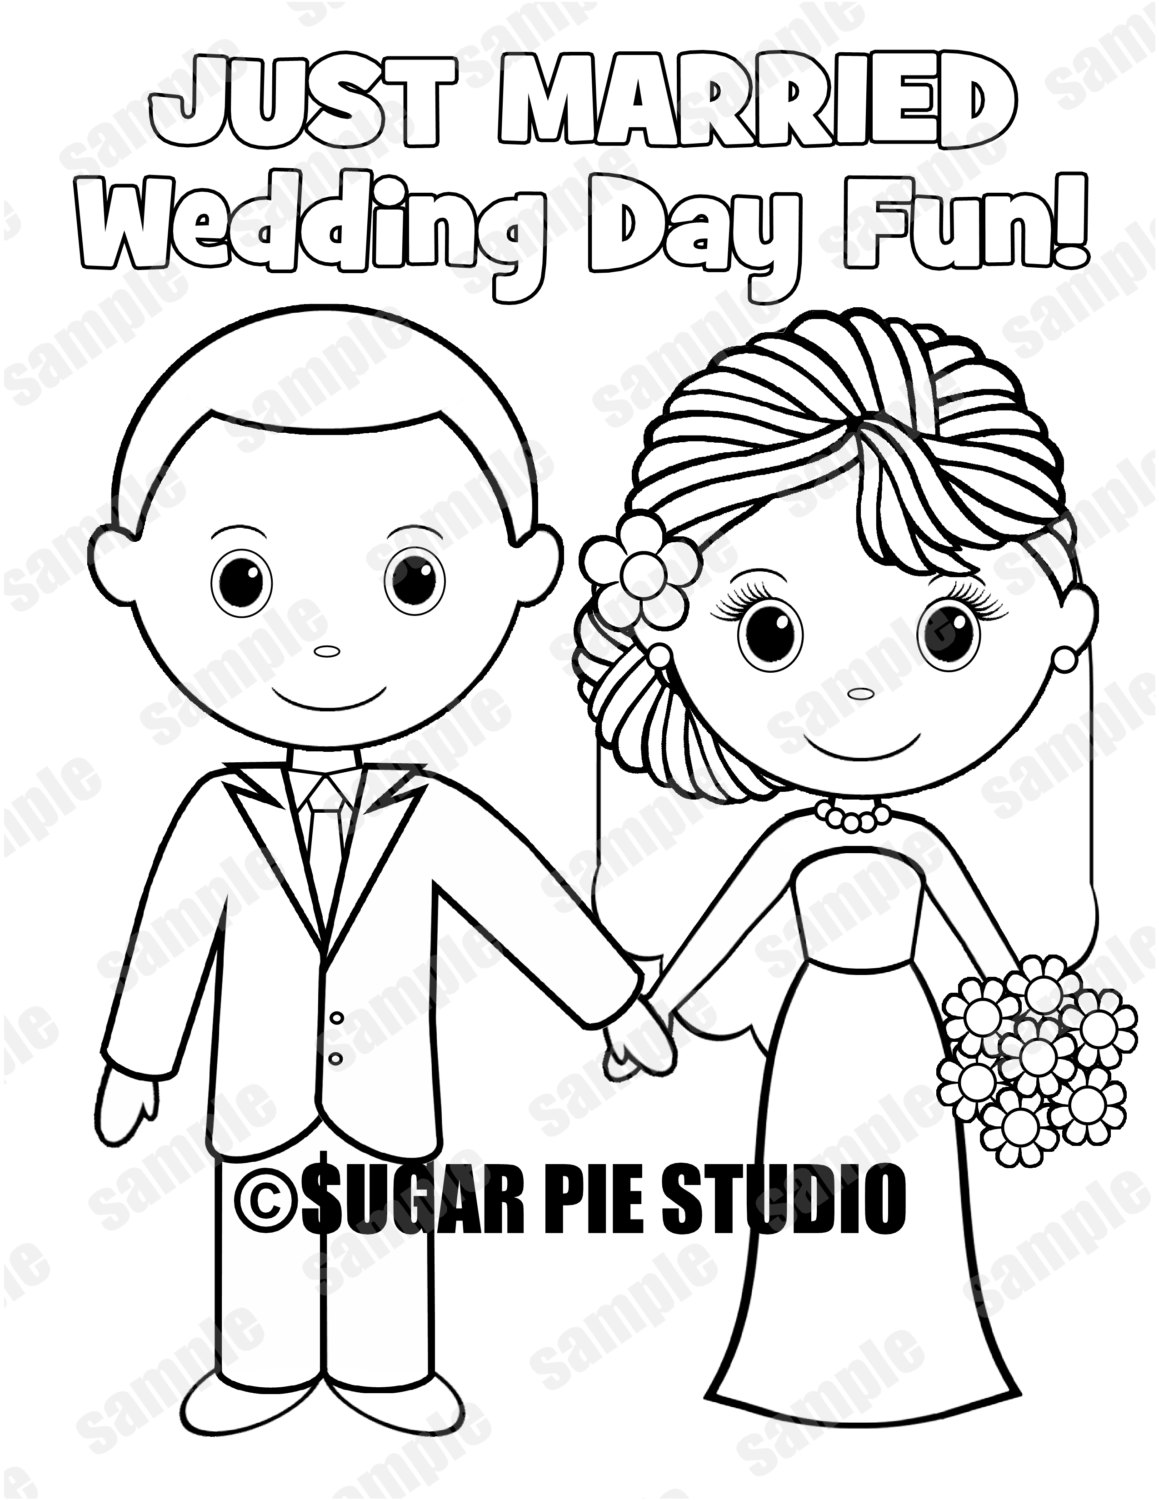 bride and groom pictures to colour in instant download printable bride groom wedding coloring page bride to in groom pictures and colour